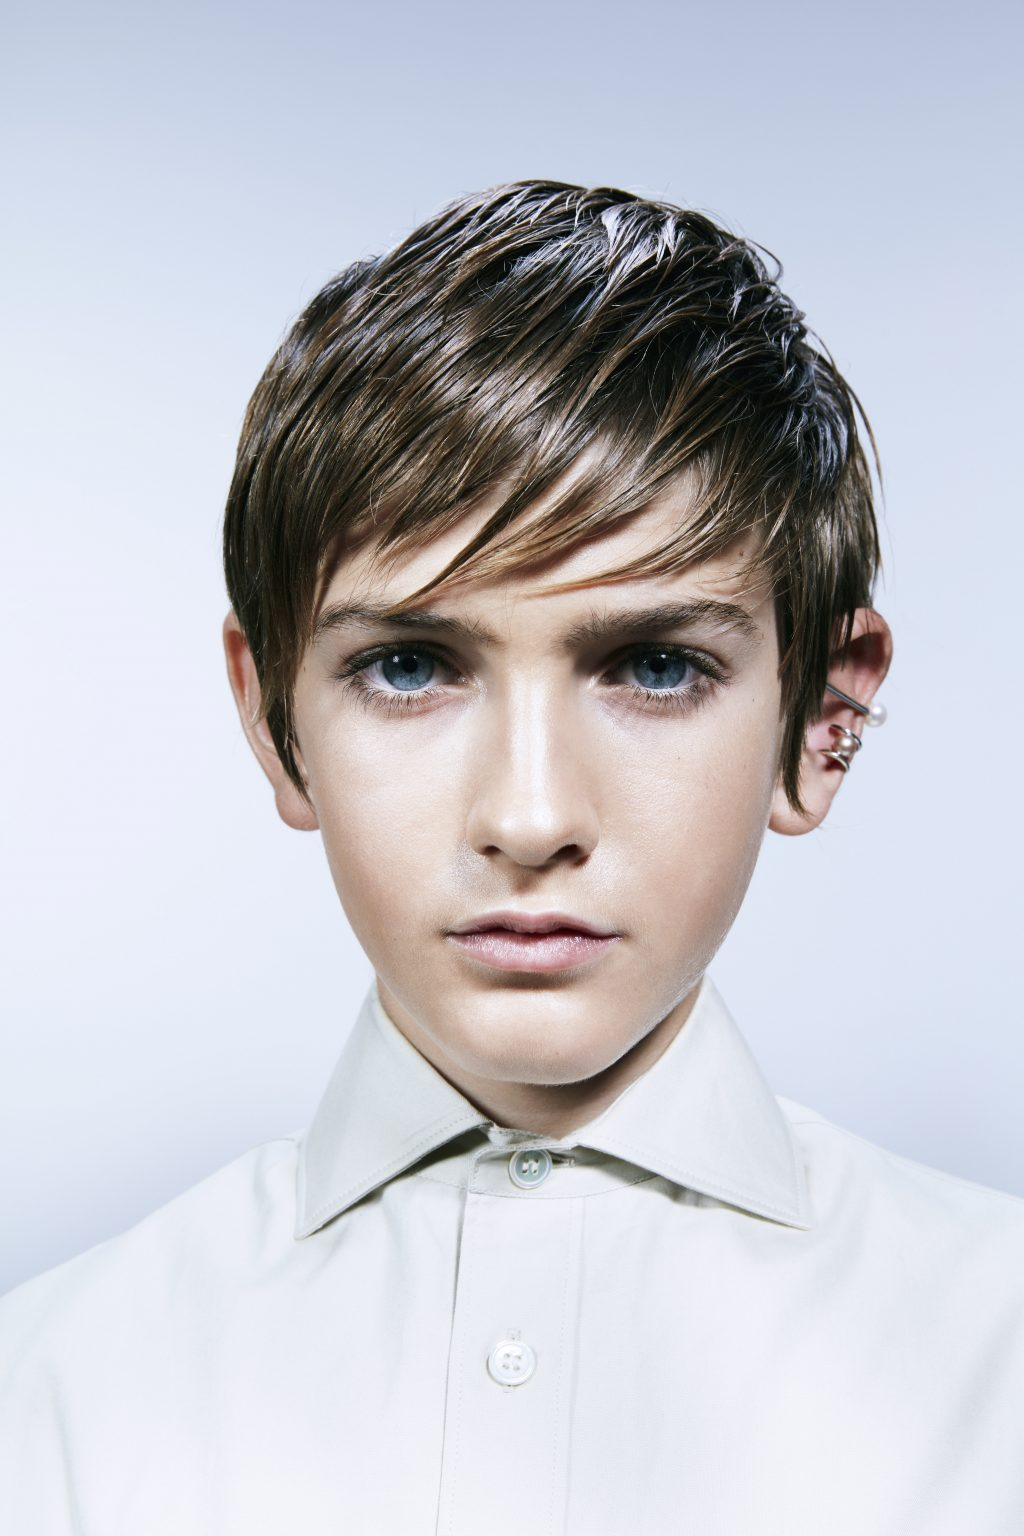 kids wear magazine hair make up Achim Lippoth